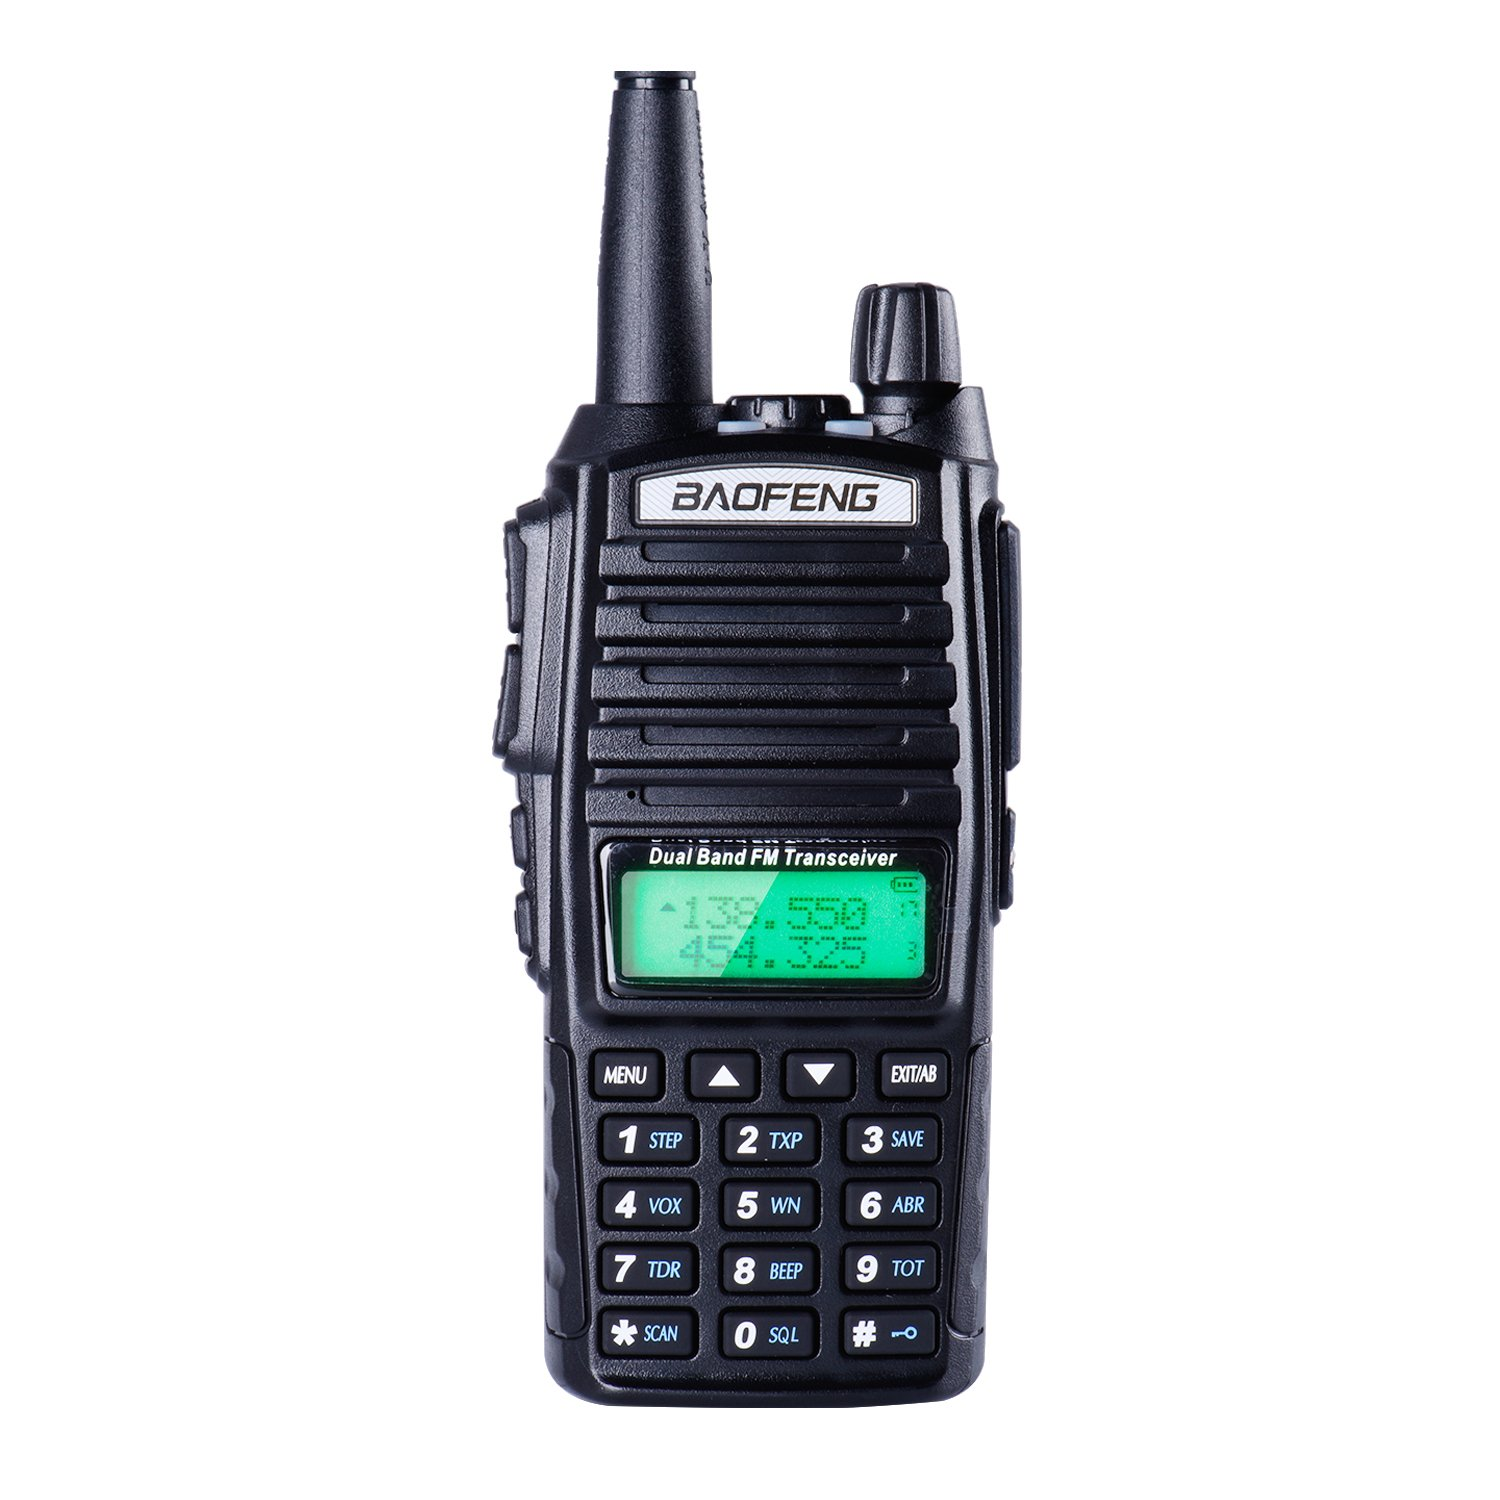 BaoFeng UV82 UHF High Power Intelligent FM long range with Built-in light LED Walkie Talkie Dust-proof and Waterproof two-way radio